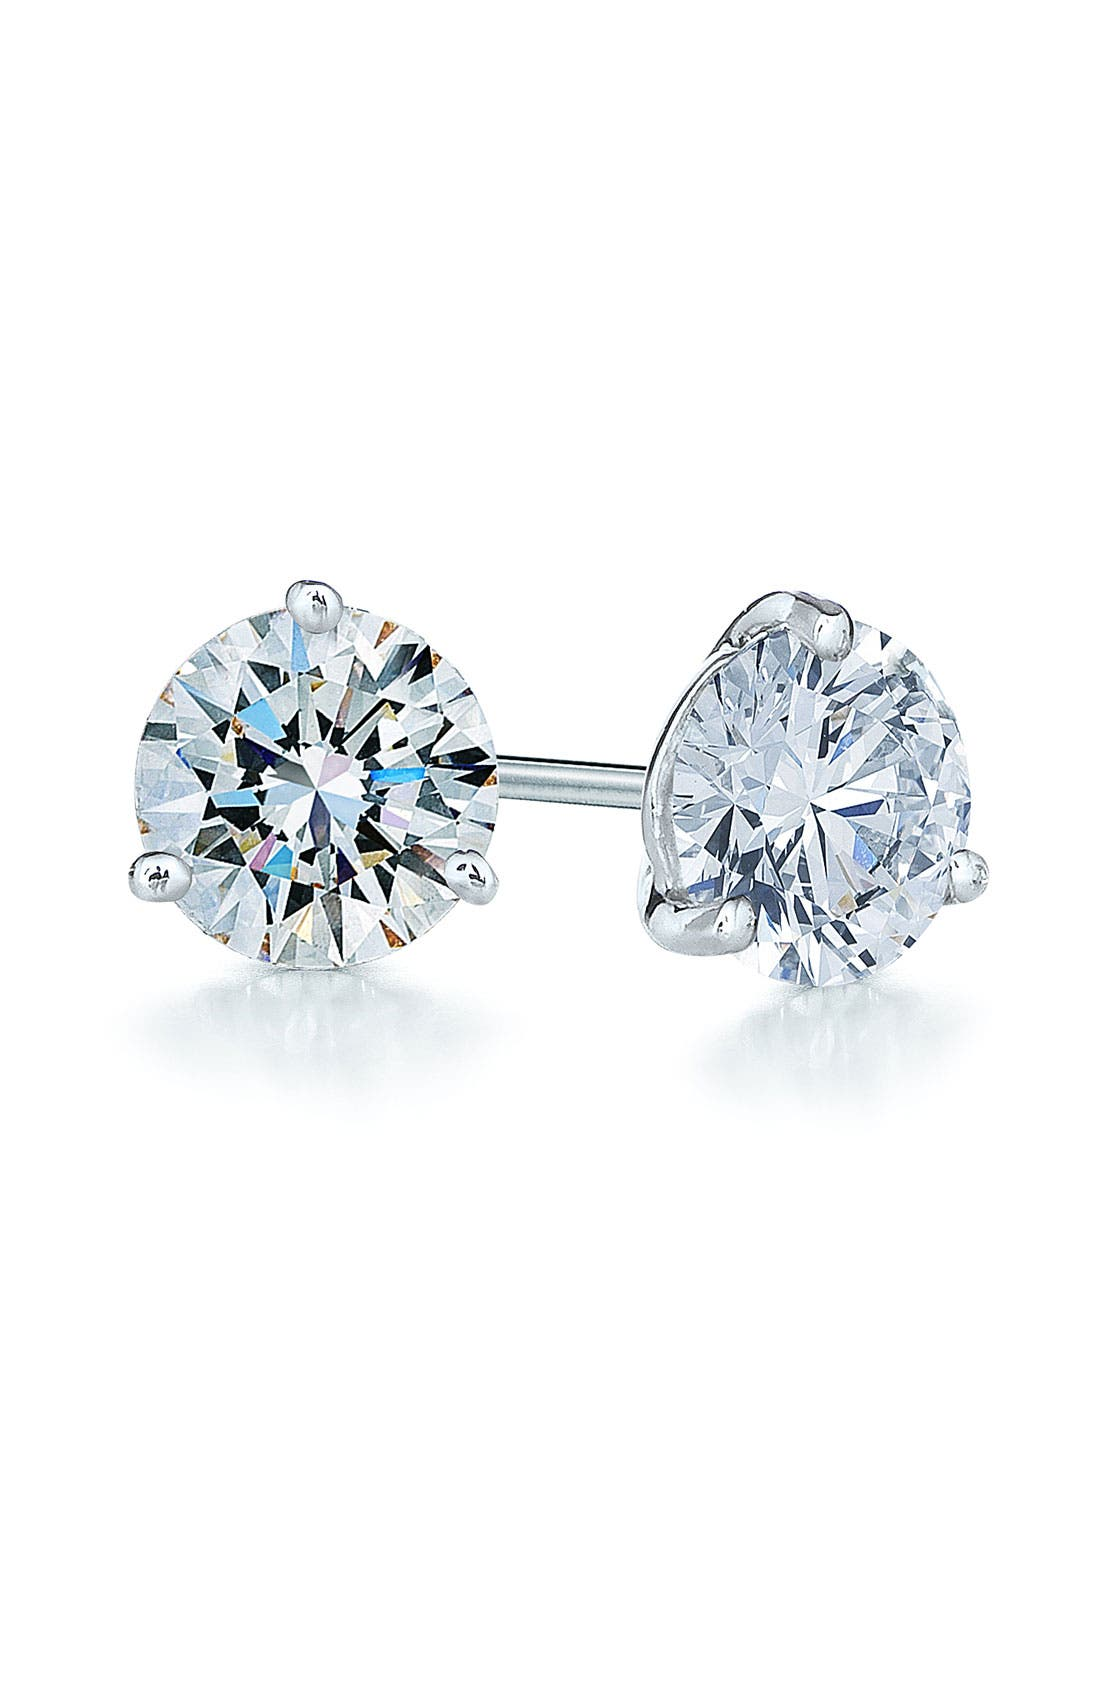 1.50ct tw Diamond & Platinum Stud Earrings,                             Main thumbnail 1, color,                             PLATINUM